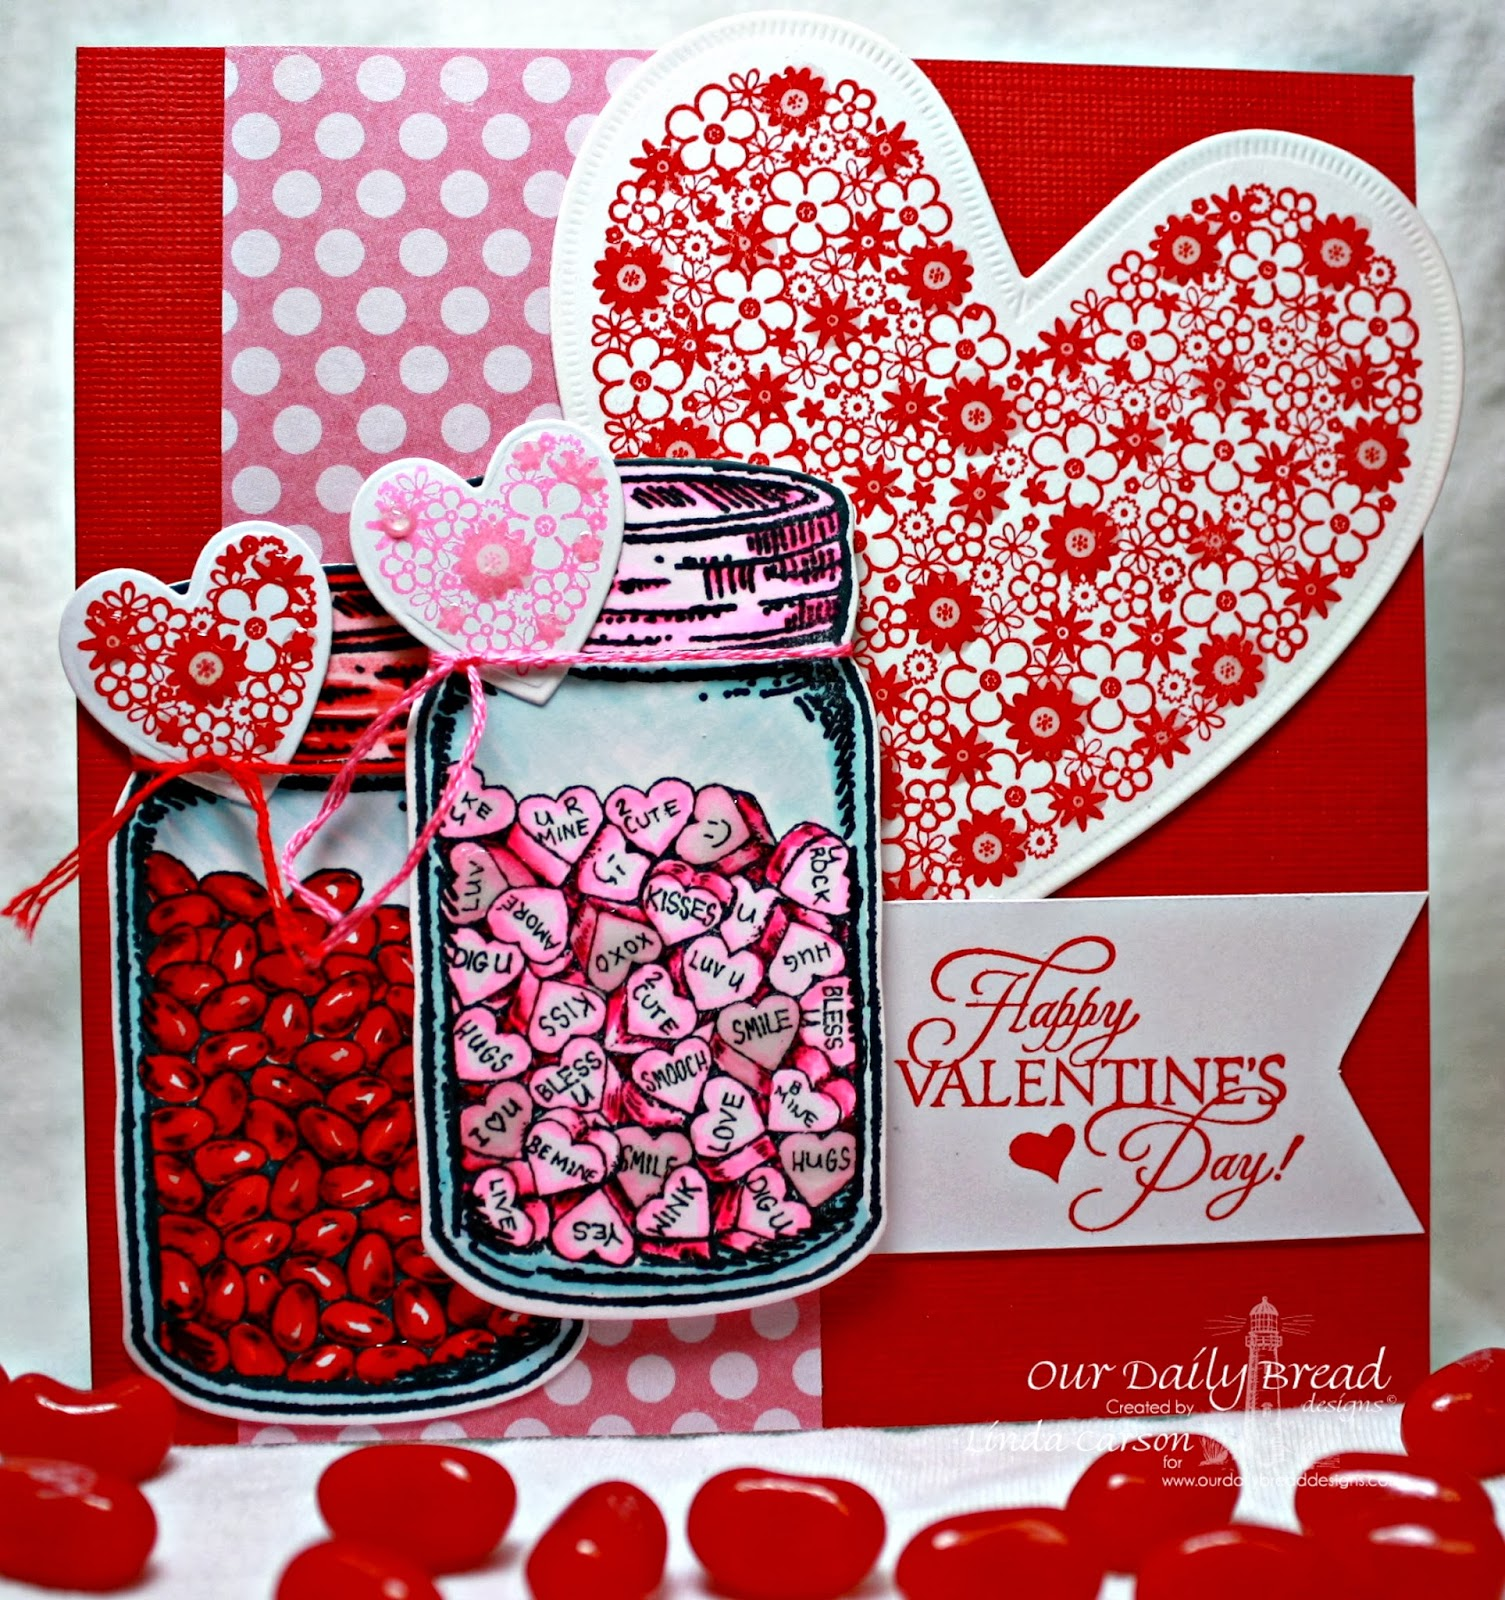 ODBD, Canning Jars, Canning Jar Fillers, Clean Heart, Bless Your Heart, Clean Heart, Canning Jars die, Ornate Hearts die, designer Linda Carson